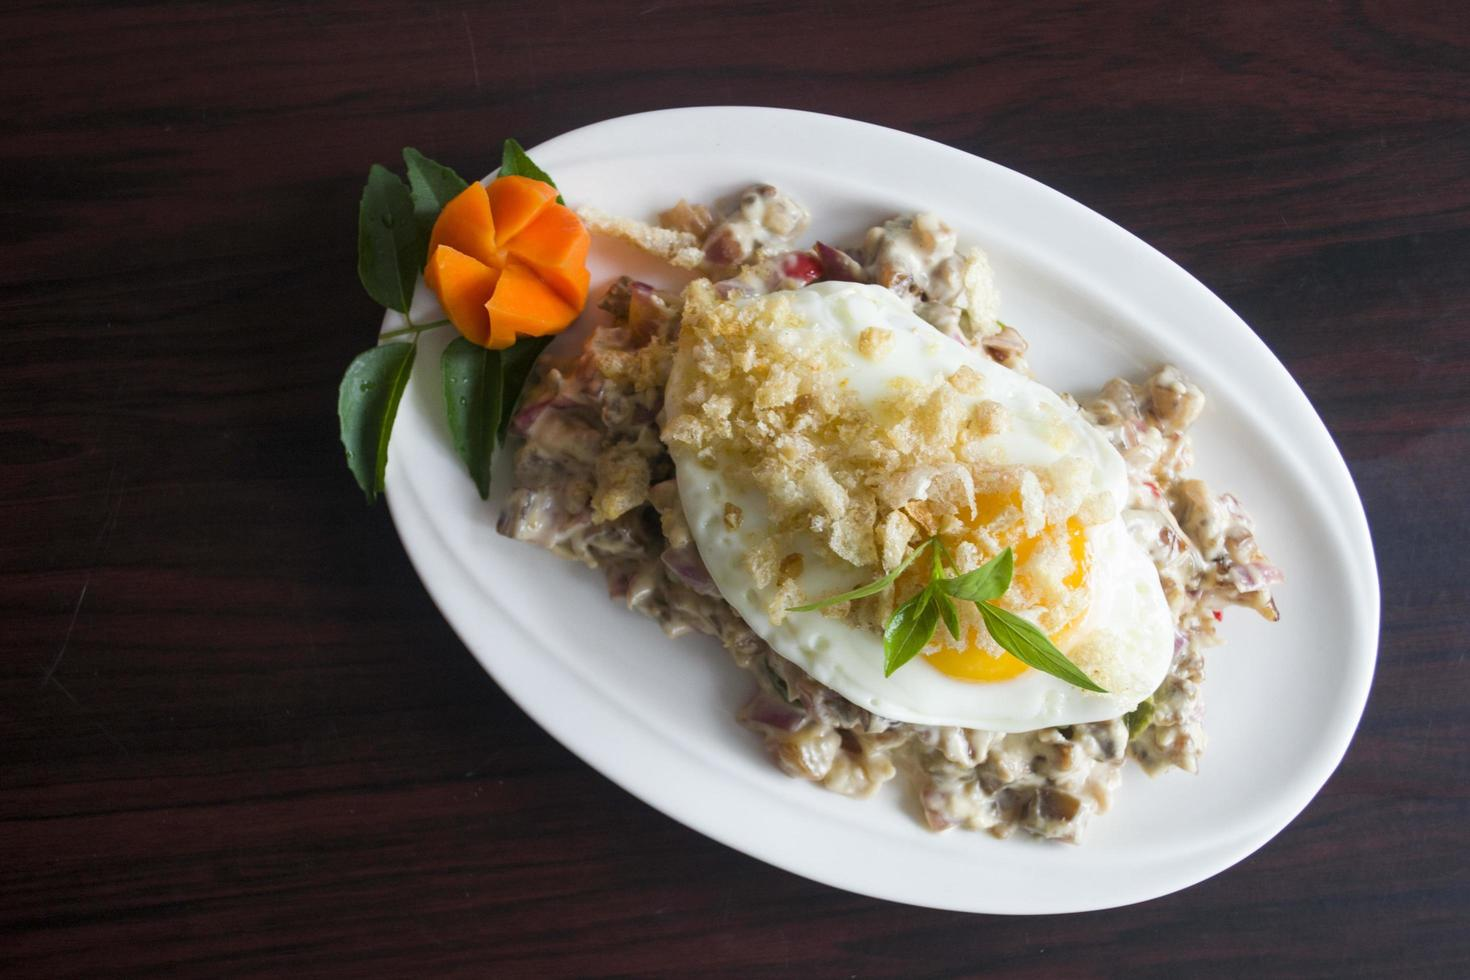 Dish with sunny side up egg photo